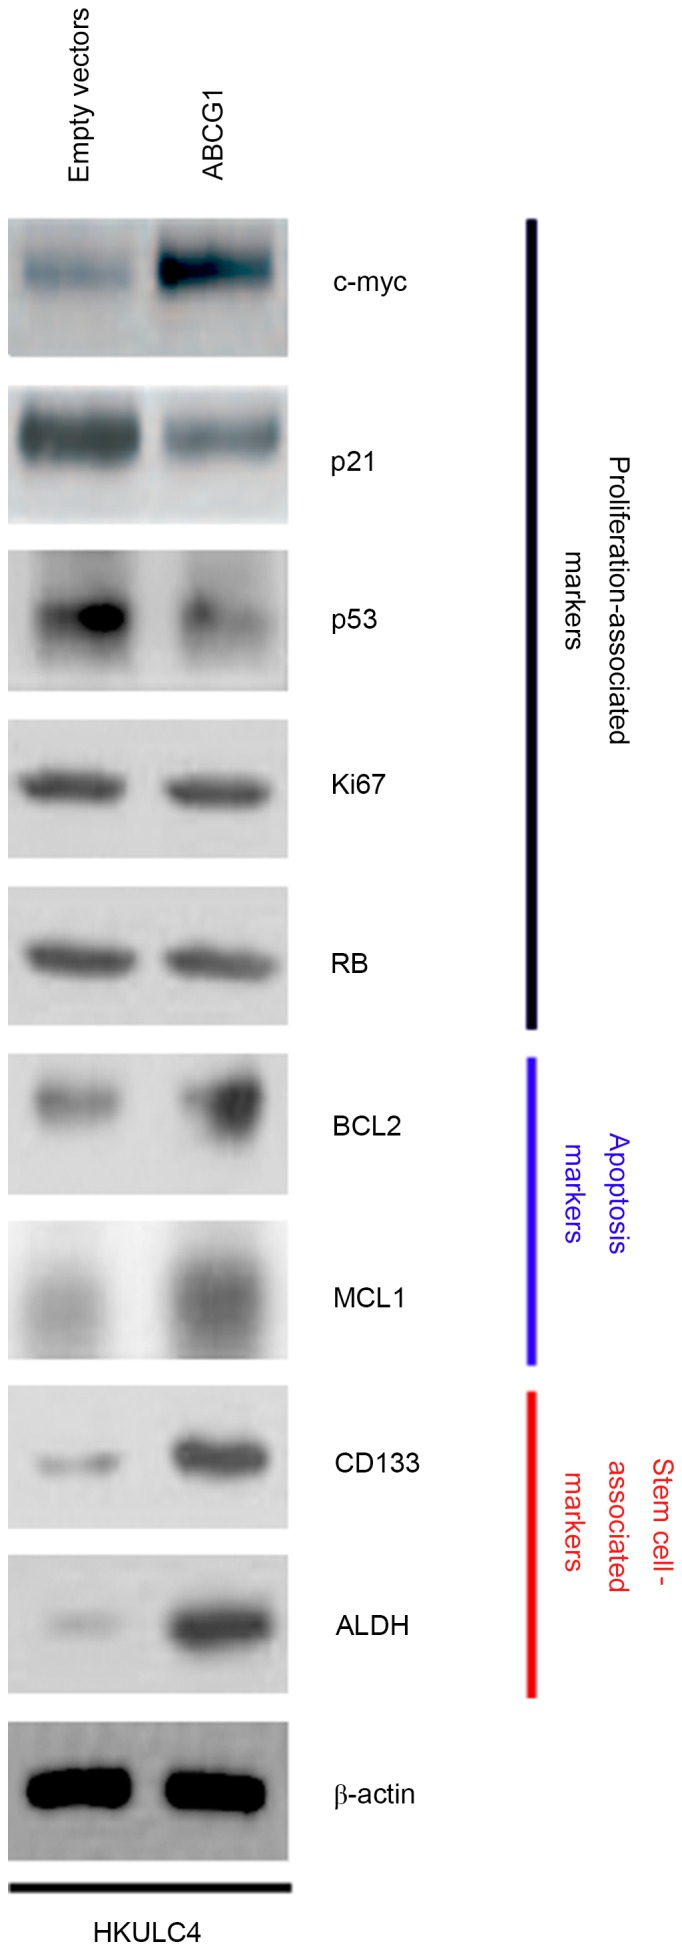 ABCG1 regulates proliferation-, apoptosis- and cancer stem cell-associated markers in HKULC4 lung cancer cells. Western blot for c-Myc, p21, p53, Ki67, RB, BCL2, MCL1, <t>CD133</t> and ALDH1 in HKULC4 cells transfected with ABCG1-expressing plasmid or empty vector. β-actin was used as a loading control (representative images of three experiments are shown). ABCG1, ATP-binding cassette transporter G1; BCL2, B-cell lymphoma 2; MCL1, myeloid cell leukemia 1; ALDH, aldehyde dehydrogenase; RB, retinoblastoma protein.